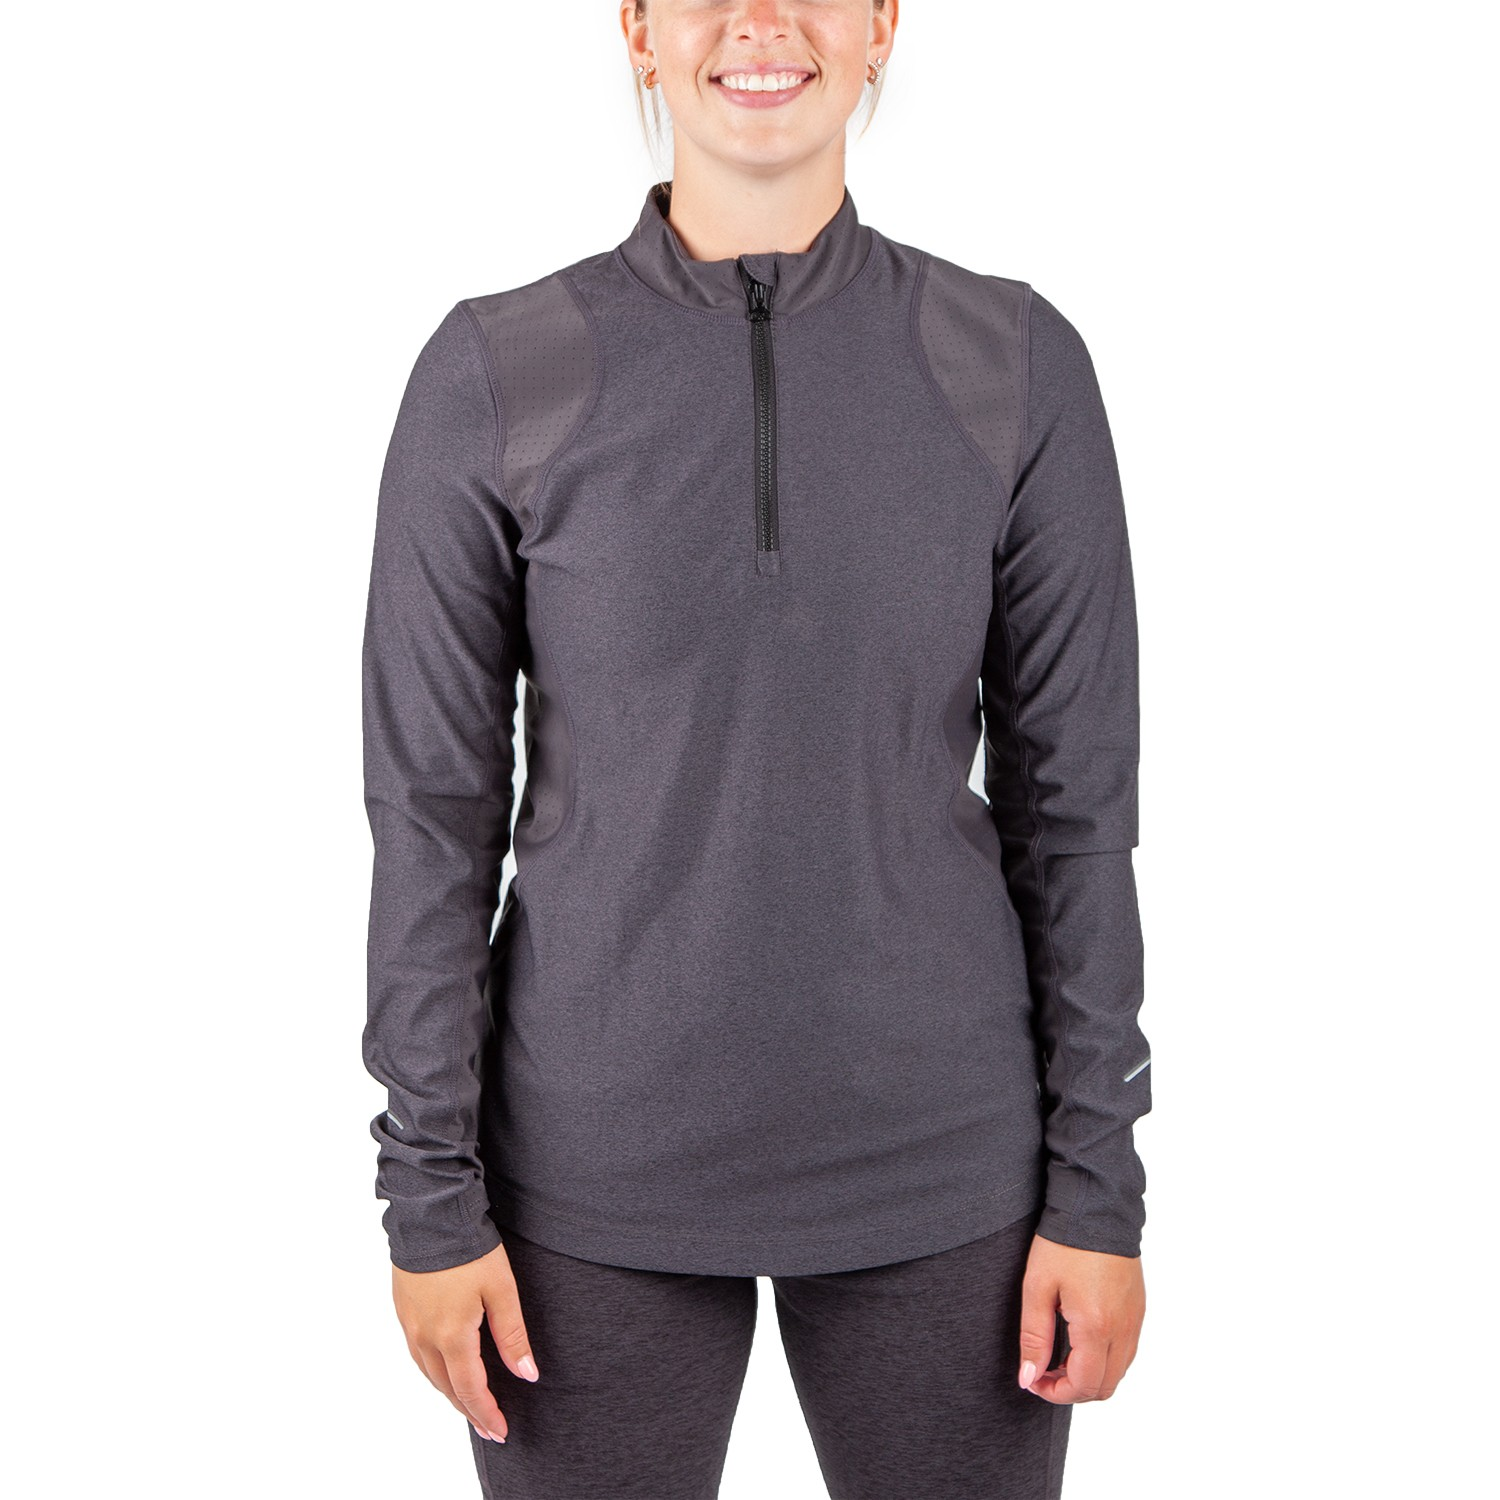 Running Room Women's Performance Front Zip Run Shirt